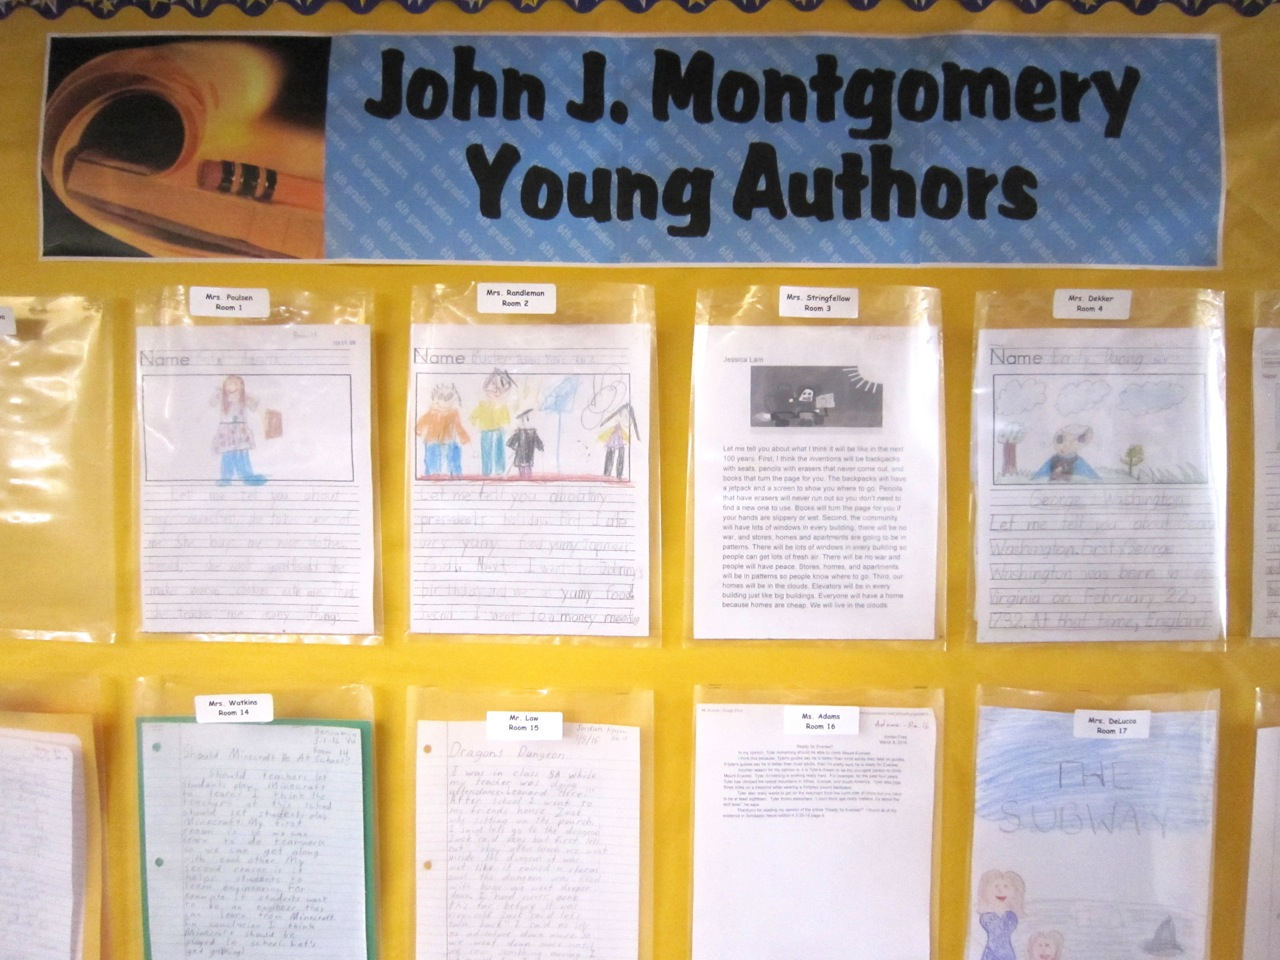 Wall display of Young Authors works